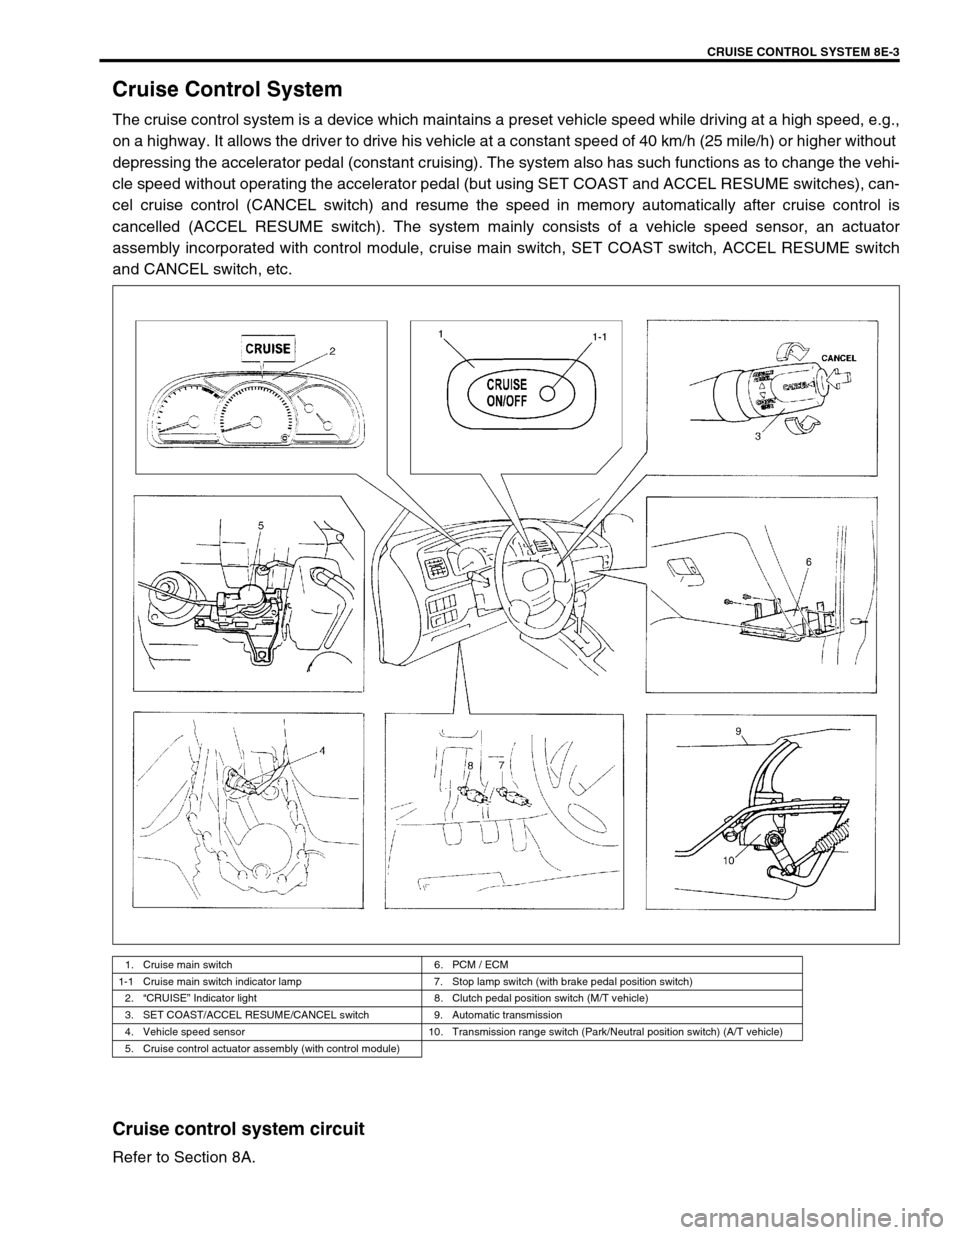 hight resolution of suzuki grand vitara 1999 2 g owners manual page 524 cruise control